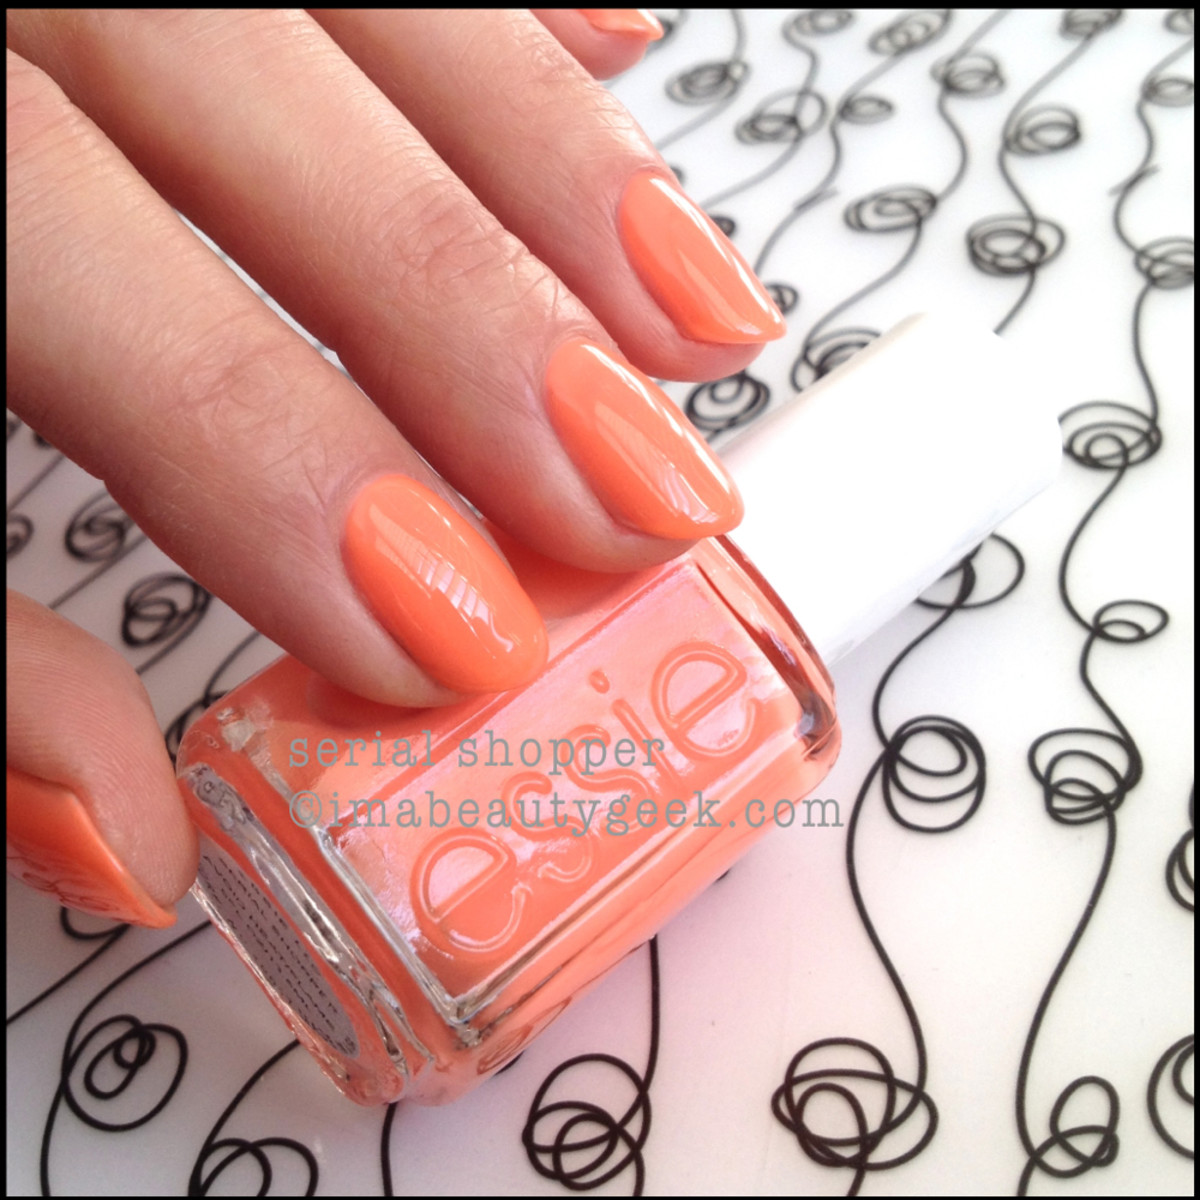 Essie Serial Shopper_1 Neon Too Taboo